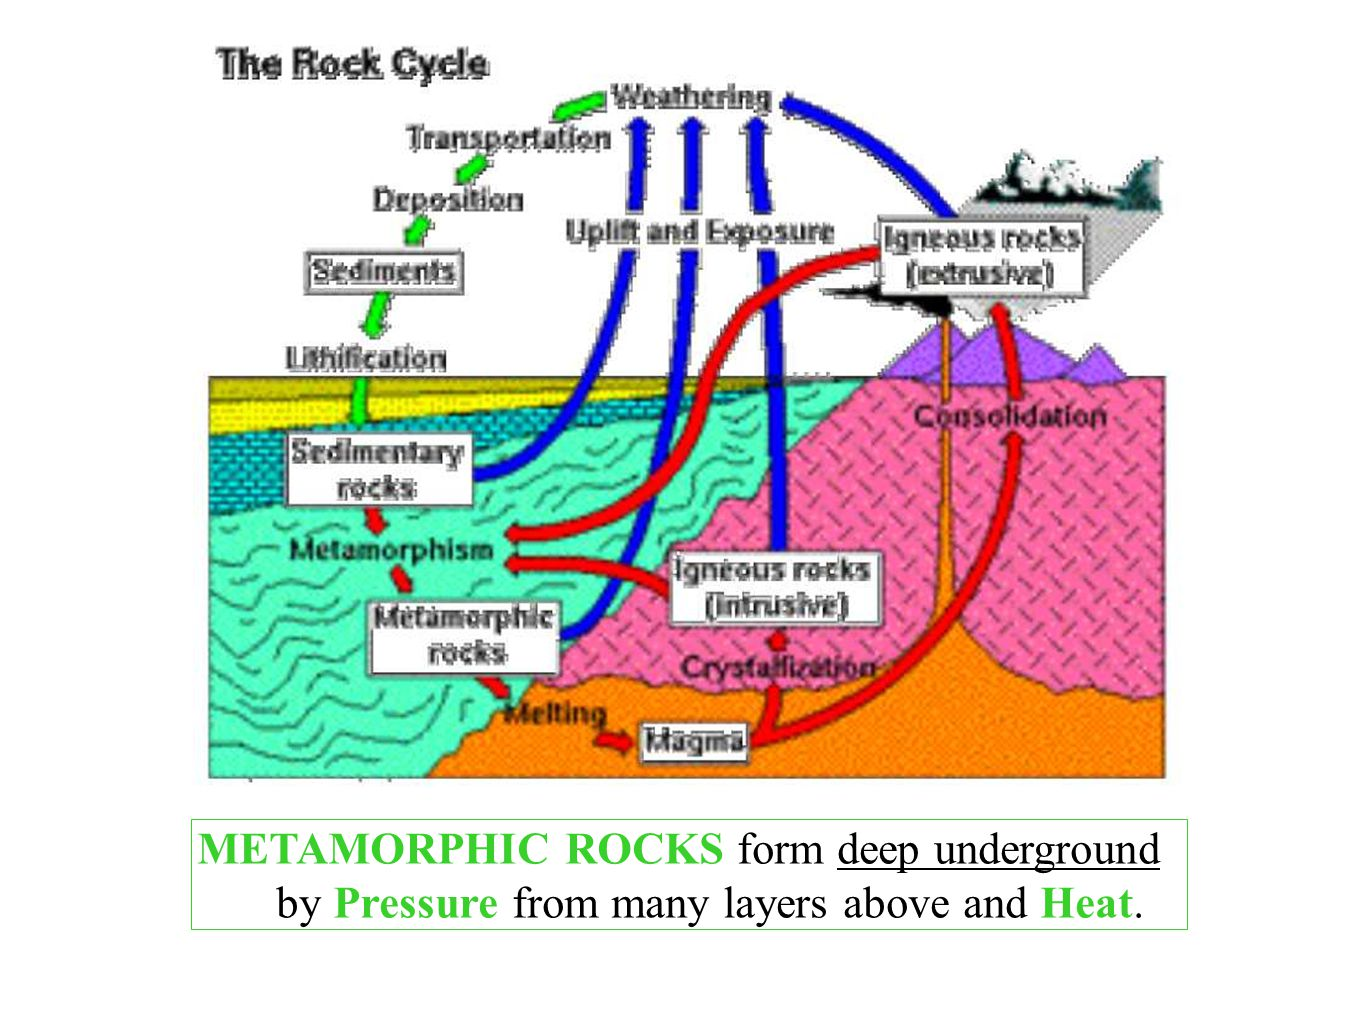 METAMORPHIC ROCKS form deep underground by Pressure from many layers above and Heat.